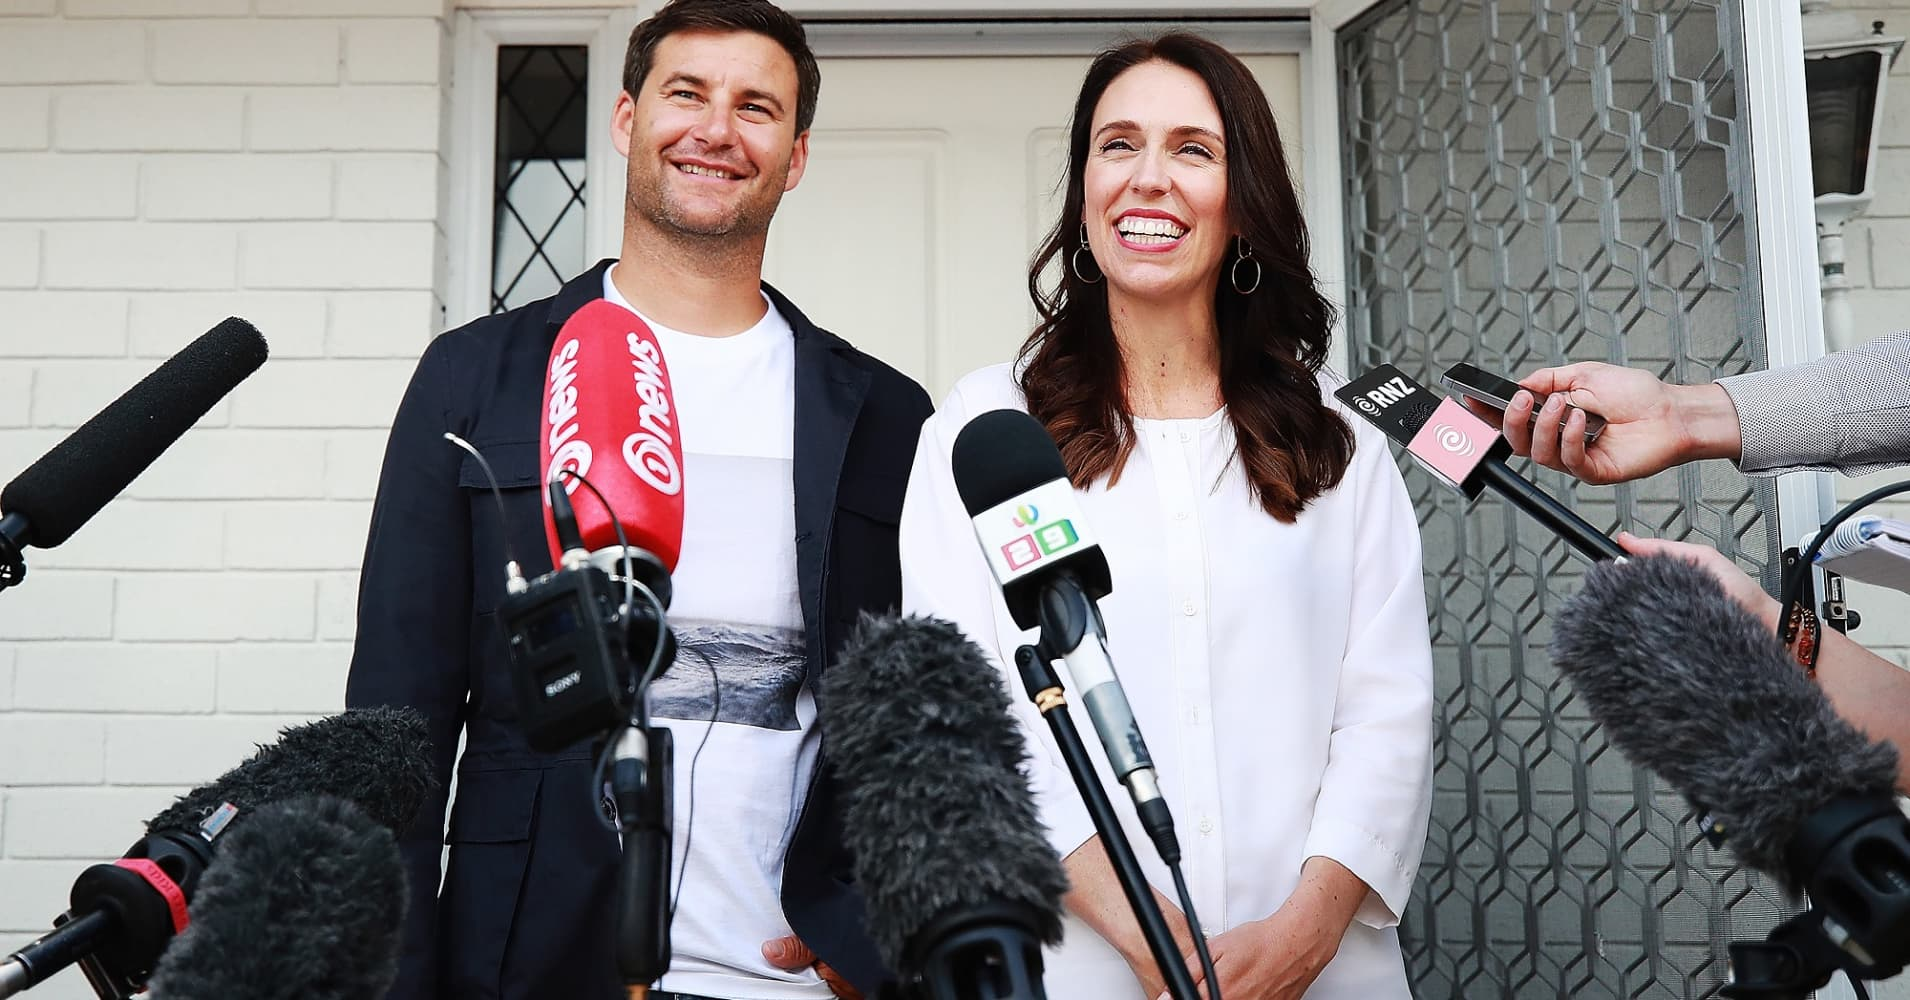 Politicians congratulate New Zealand PM on pregnancy